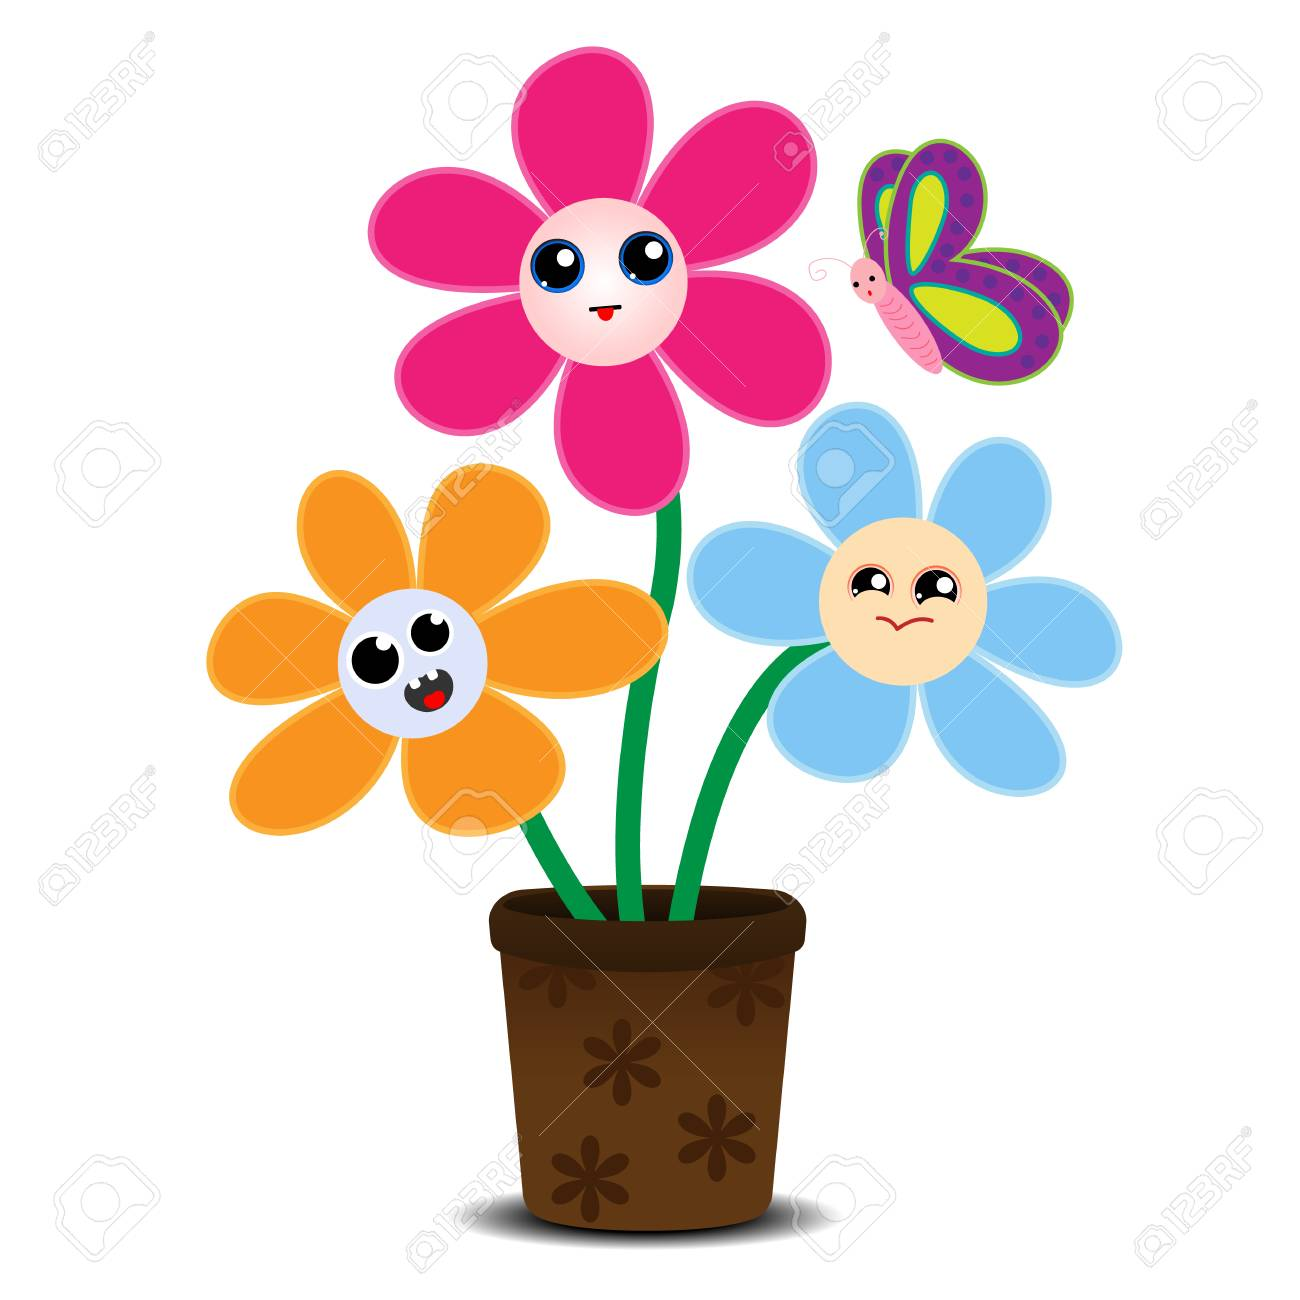 Cute Cartoon Flowers On A Flower Pot Royalty Free Cliparts Vectors And Stock Illustration Image 93063734